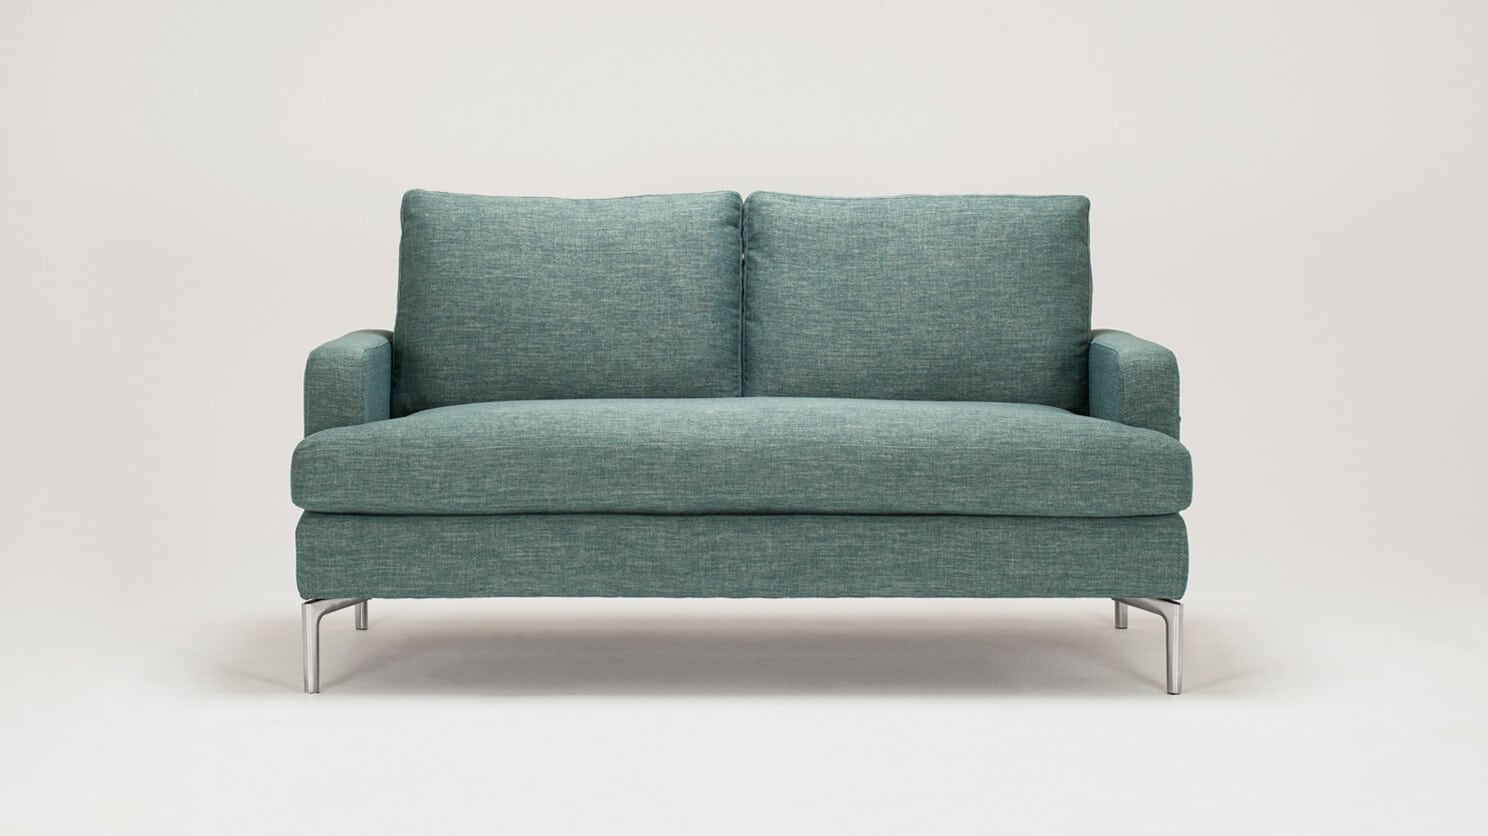 31127 03 02 loveseat eve key largo teal front view 1